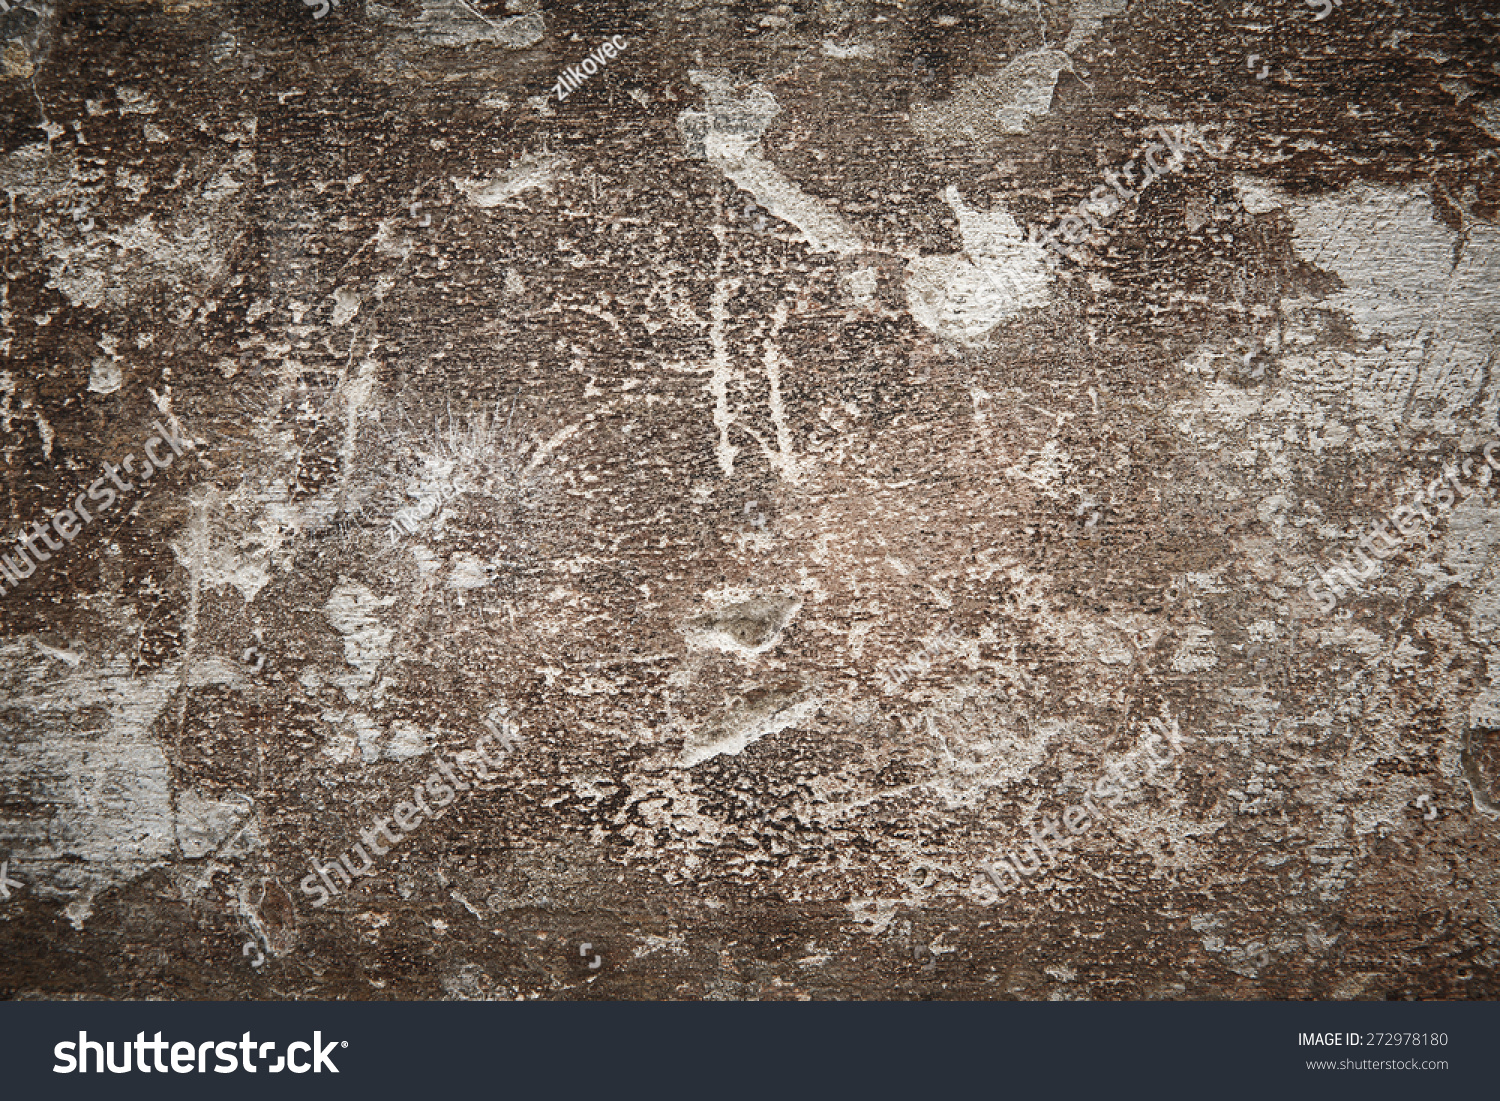 Cement Wall Graffiti : Dirty old and scraped concrete wall decorative textured